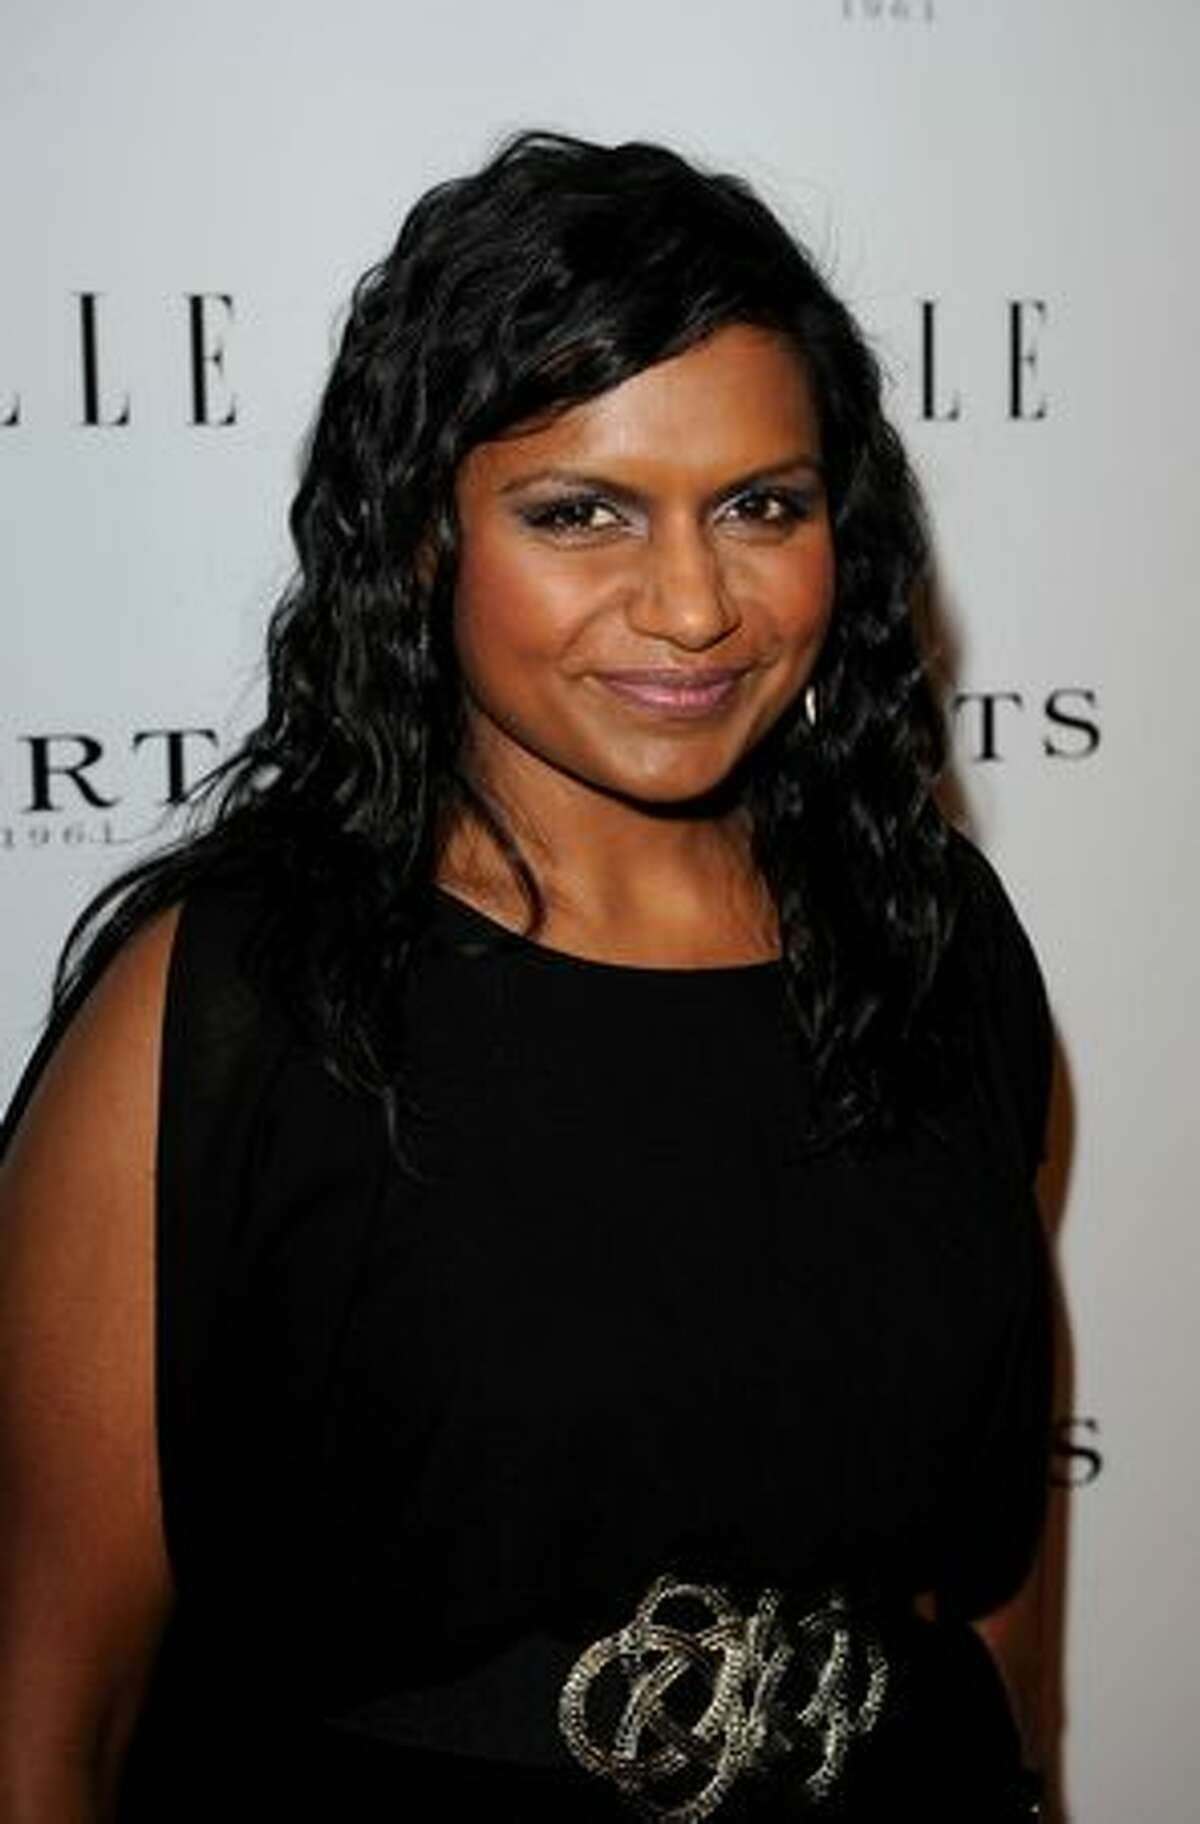 Actress Mindy Kaling arrives at ELLE Women In Television event at Soho House in West Hollywood, California.